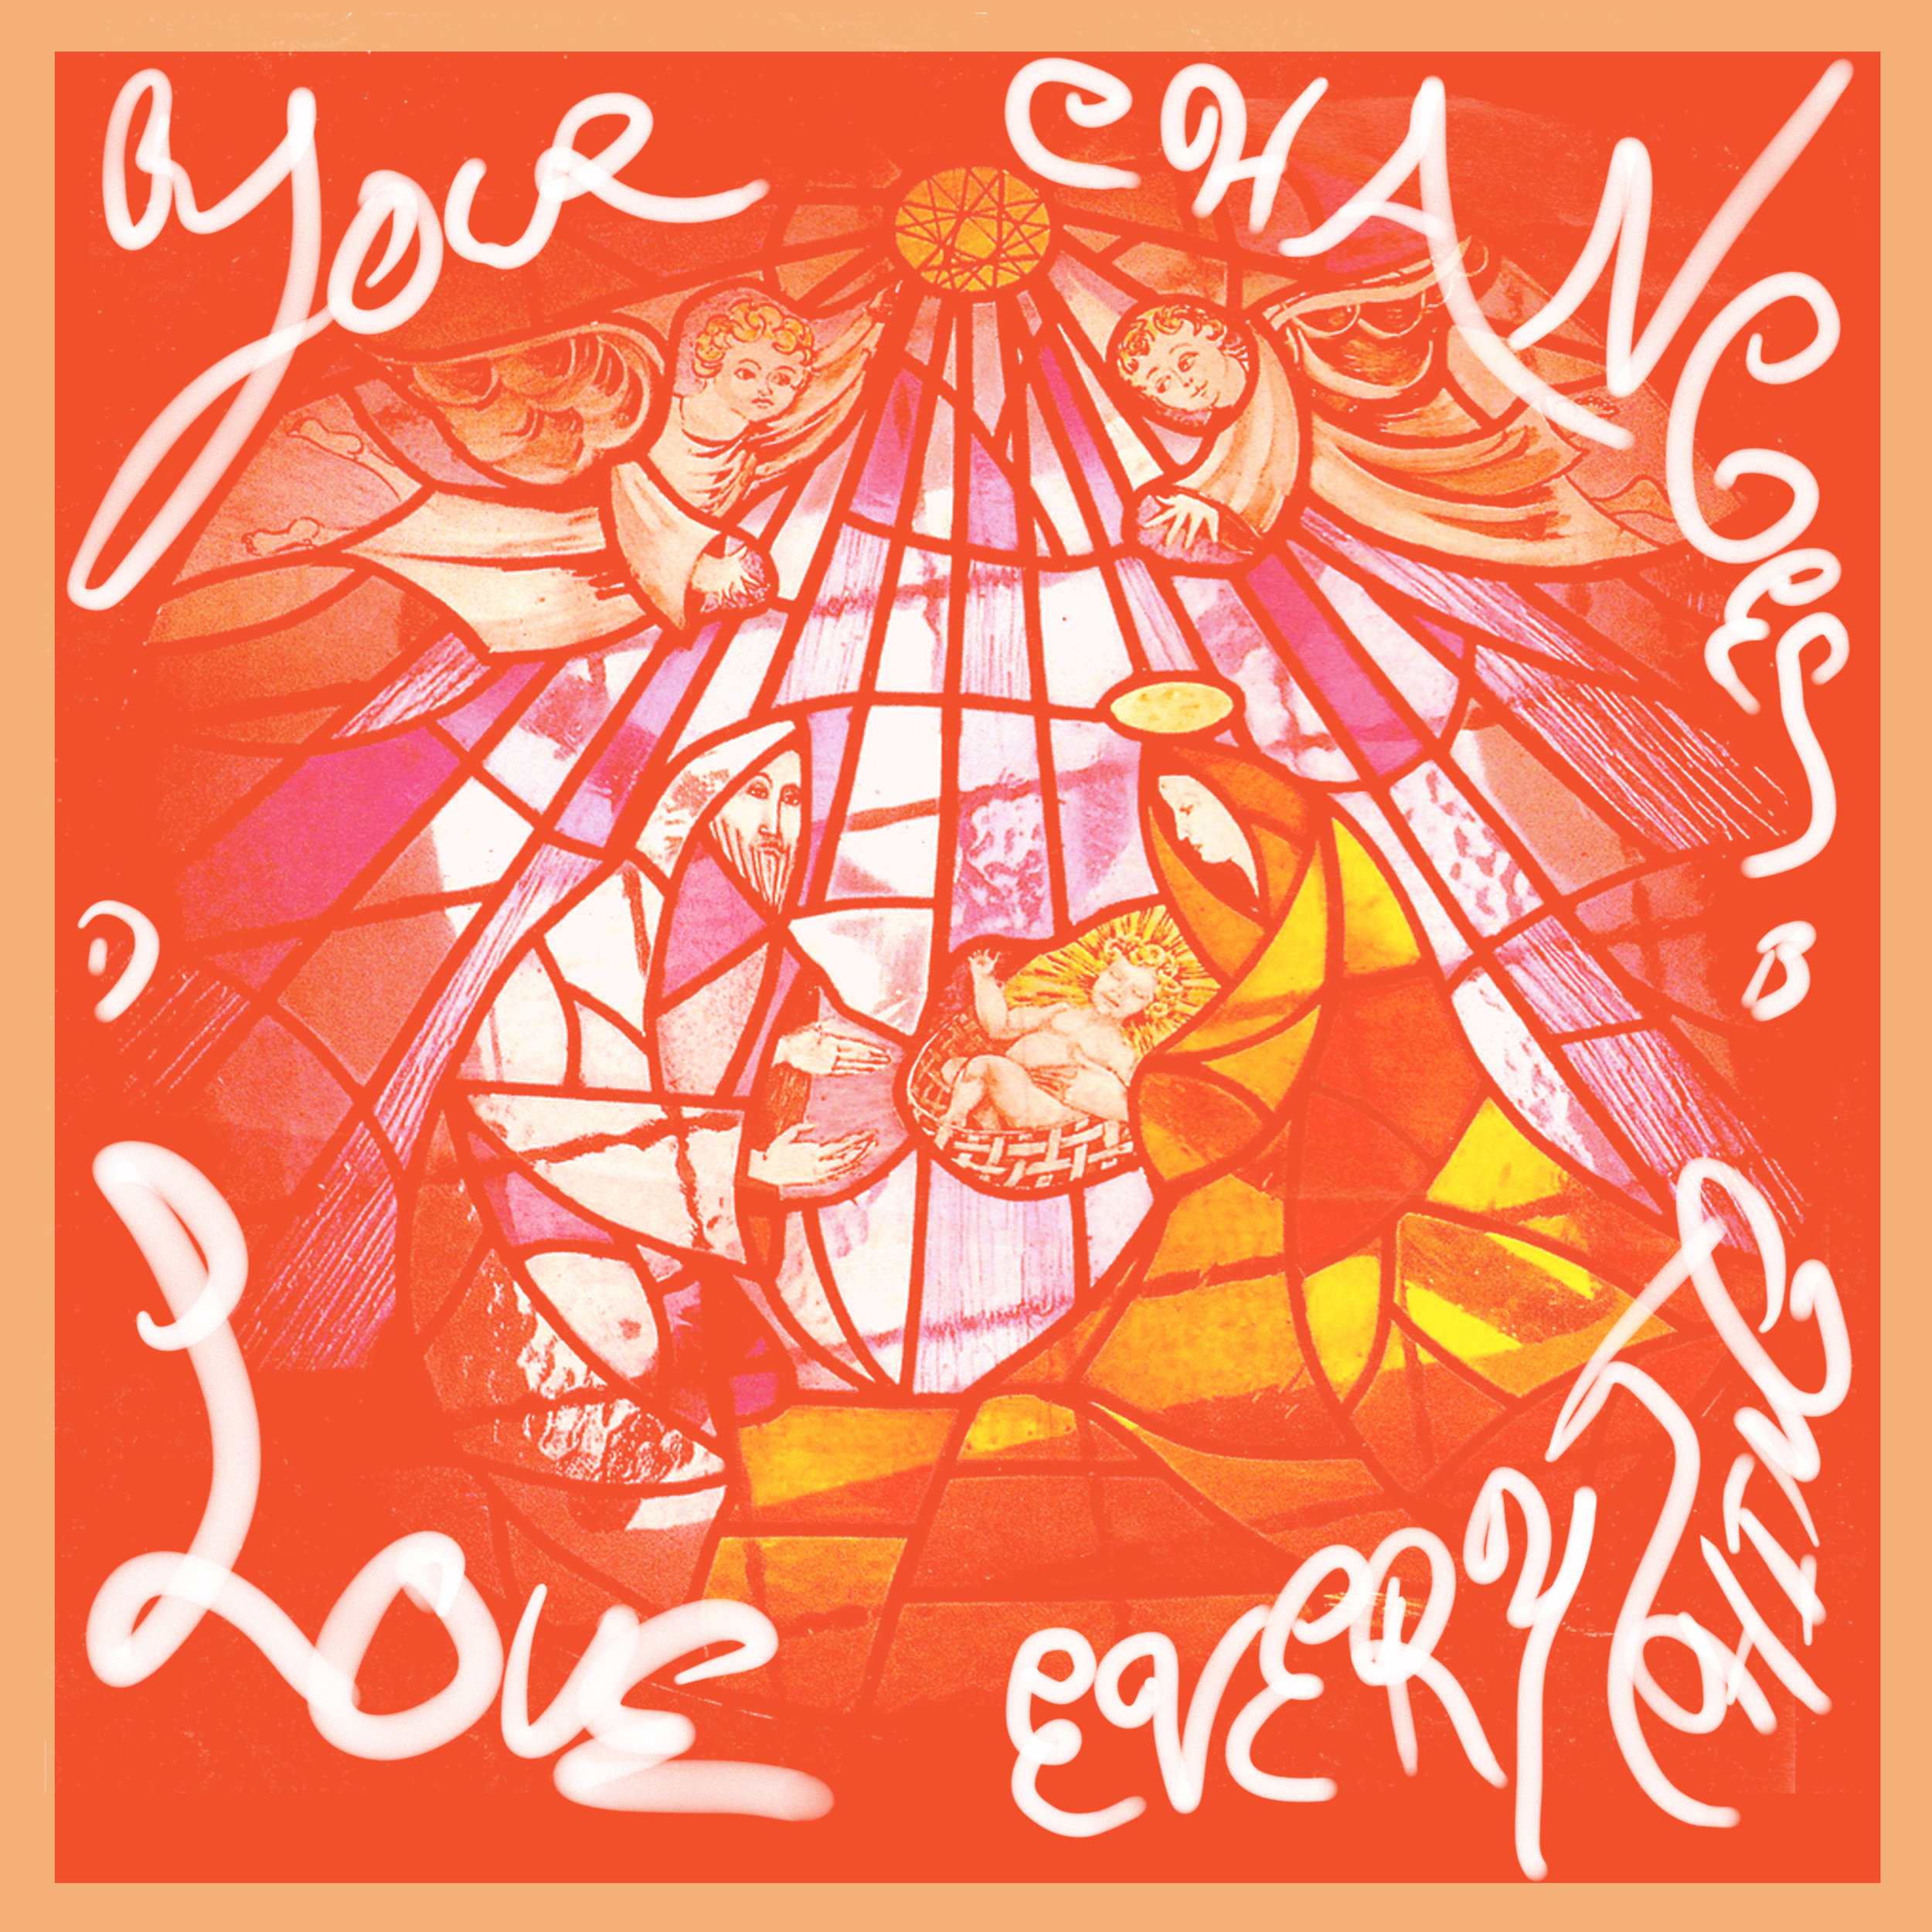 Your love changes everything ART 2.jpg